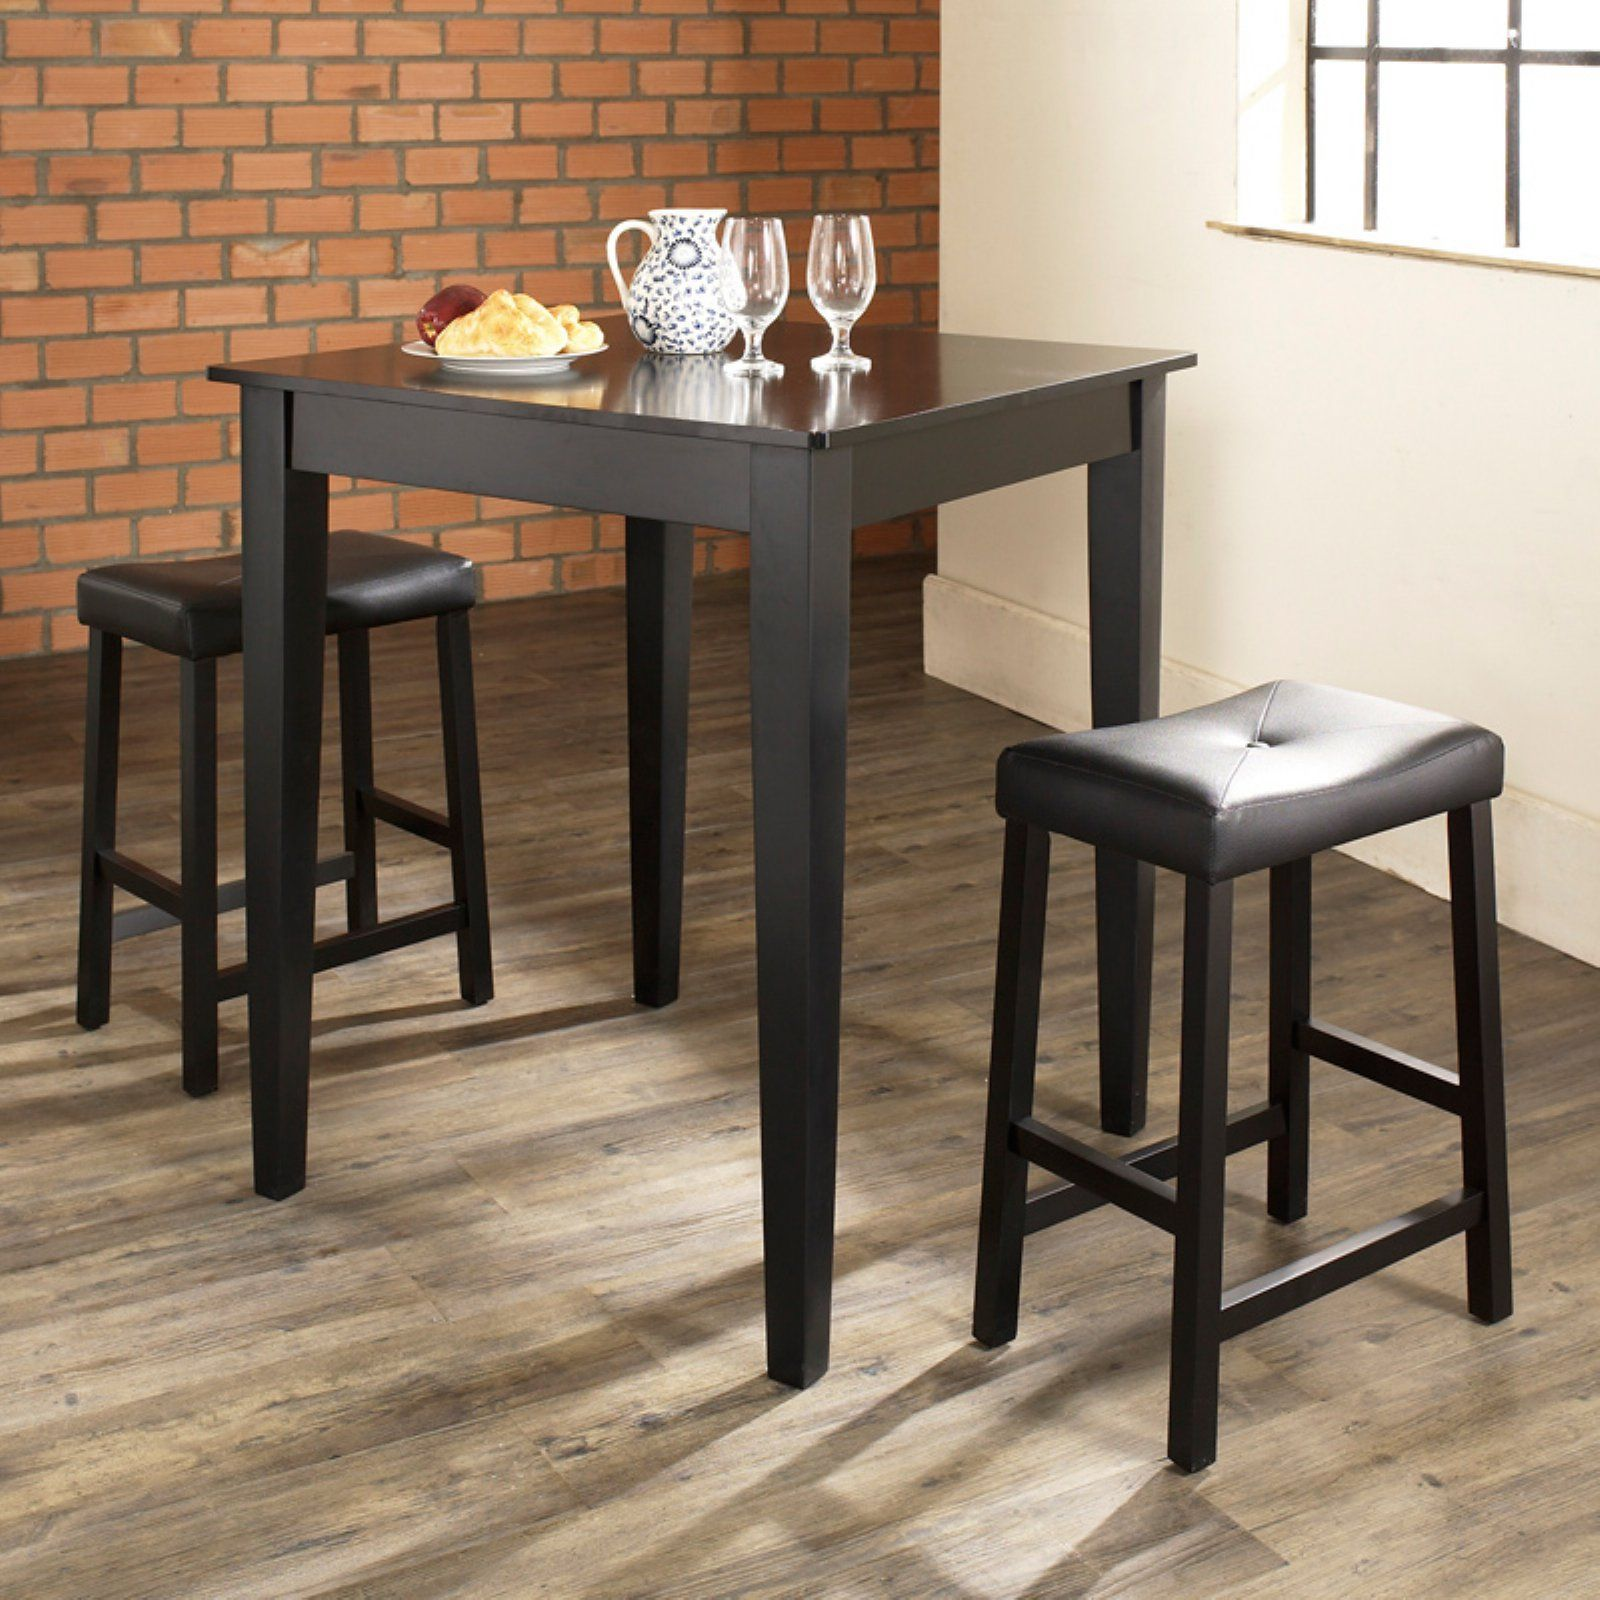 Crosley 3 Piece Pub Dining Set With Tapered Leg And Upholstered